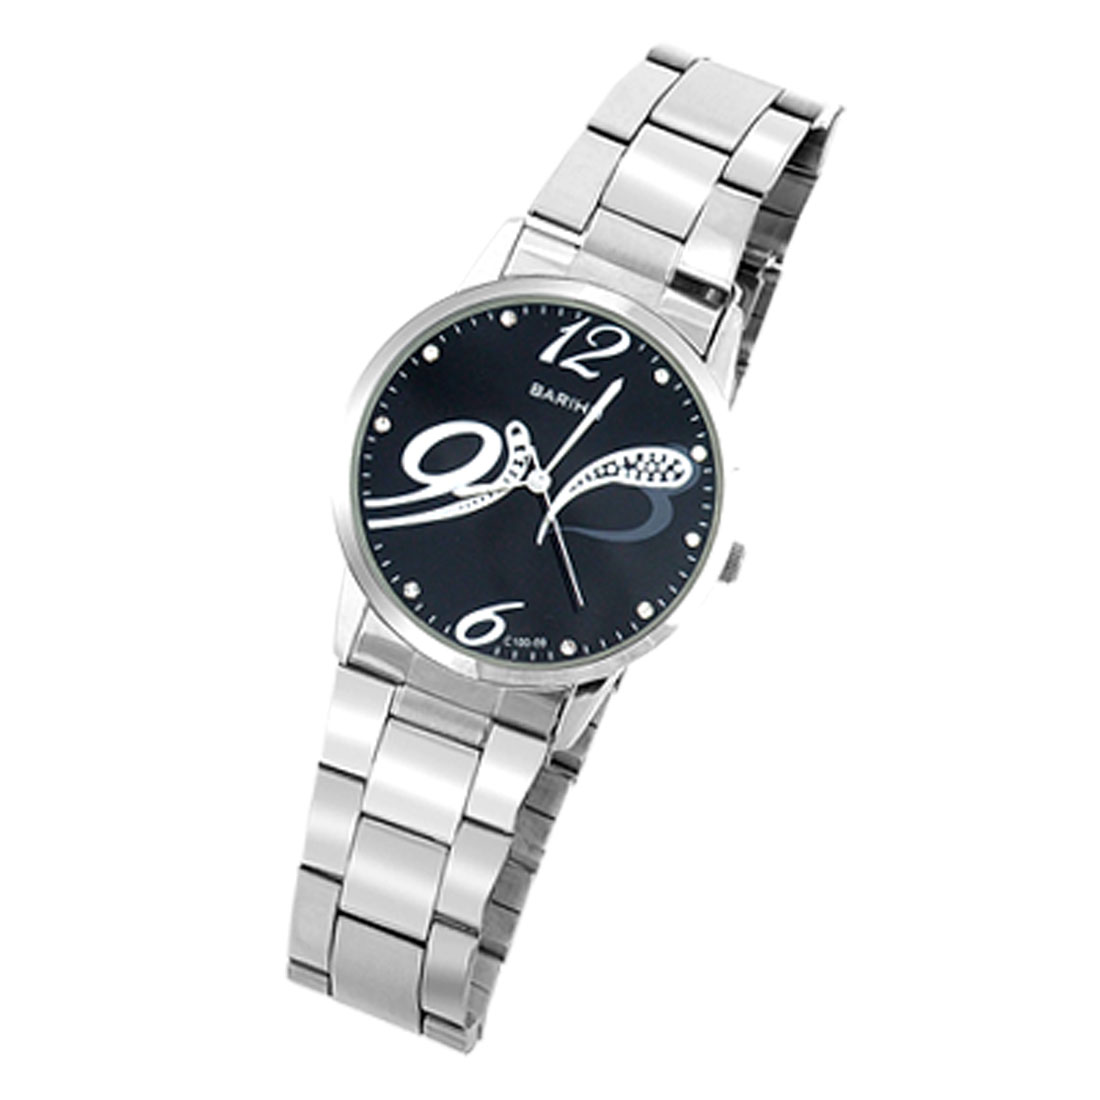 Fashion Metal Quartz Wrist Watch with Black Dial for Ladies